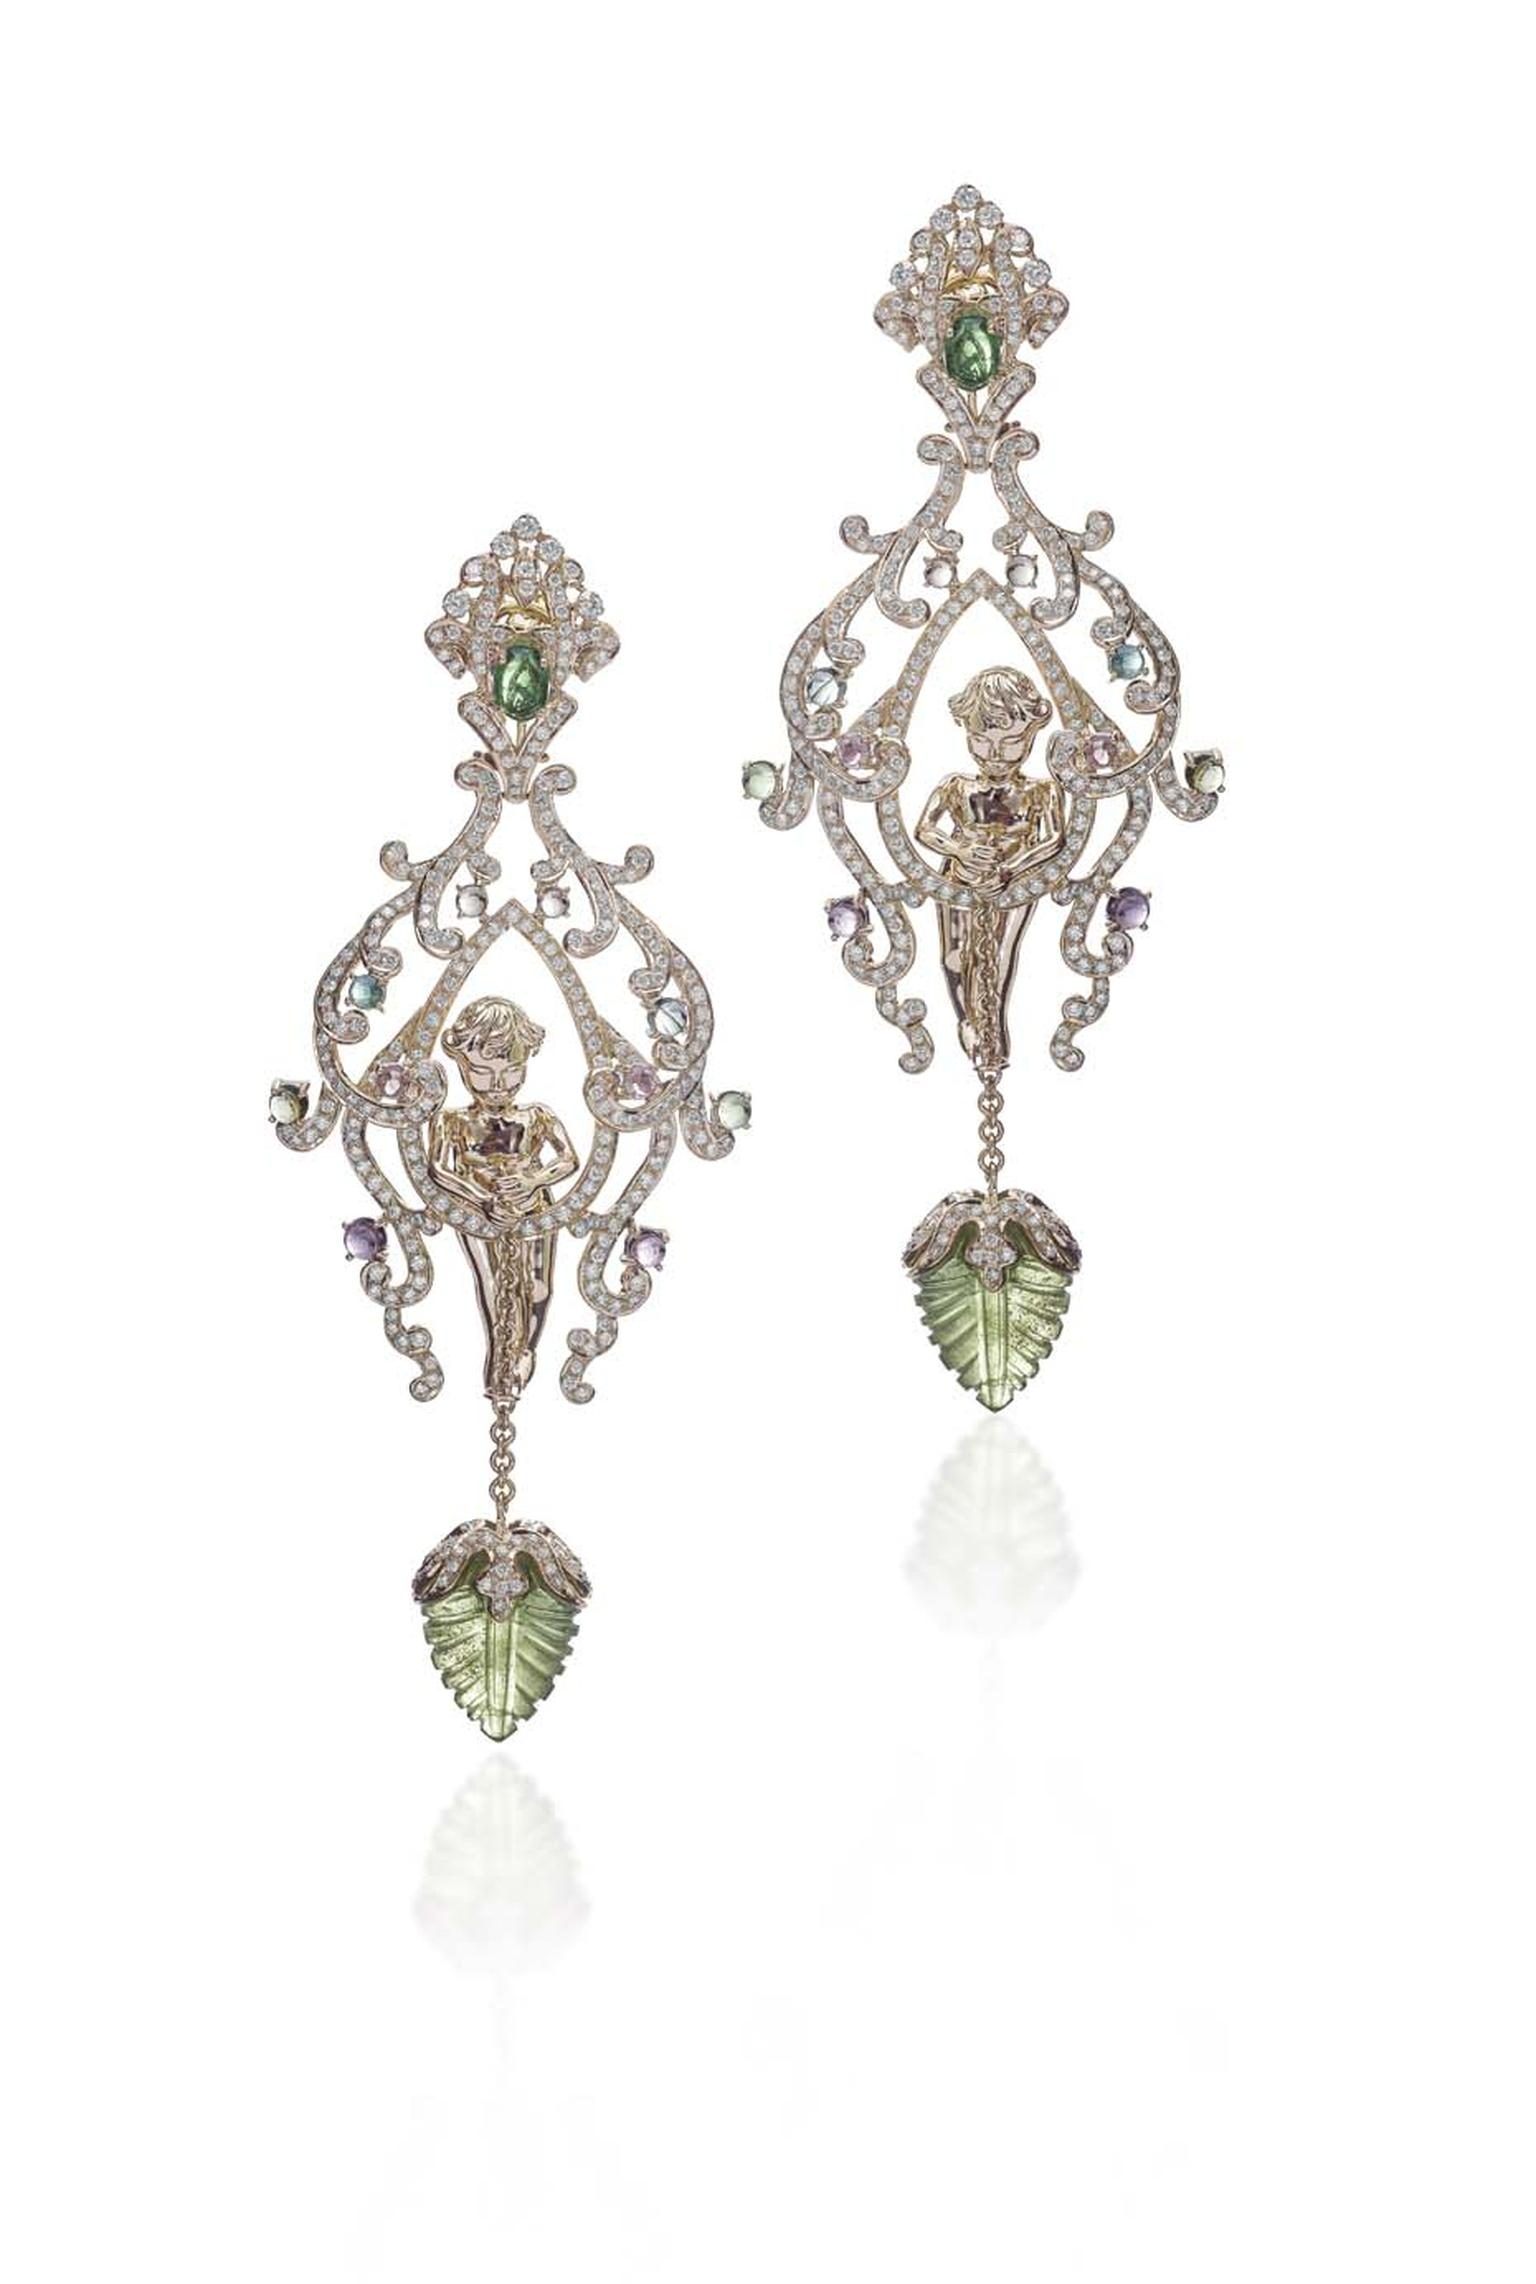 Farah Khan chandelier gold Angel earrings, inspired by Victorian elegance, set with peridot leaf carvings, multi-coloured tourmaline cabochons and diamonds.